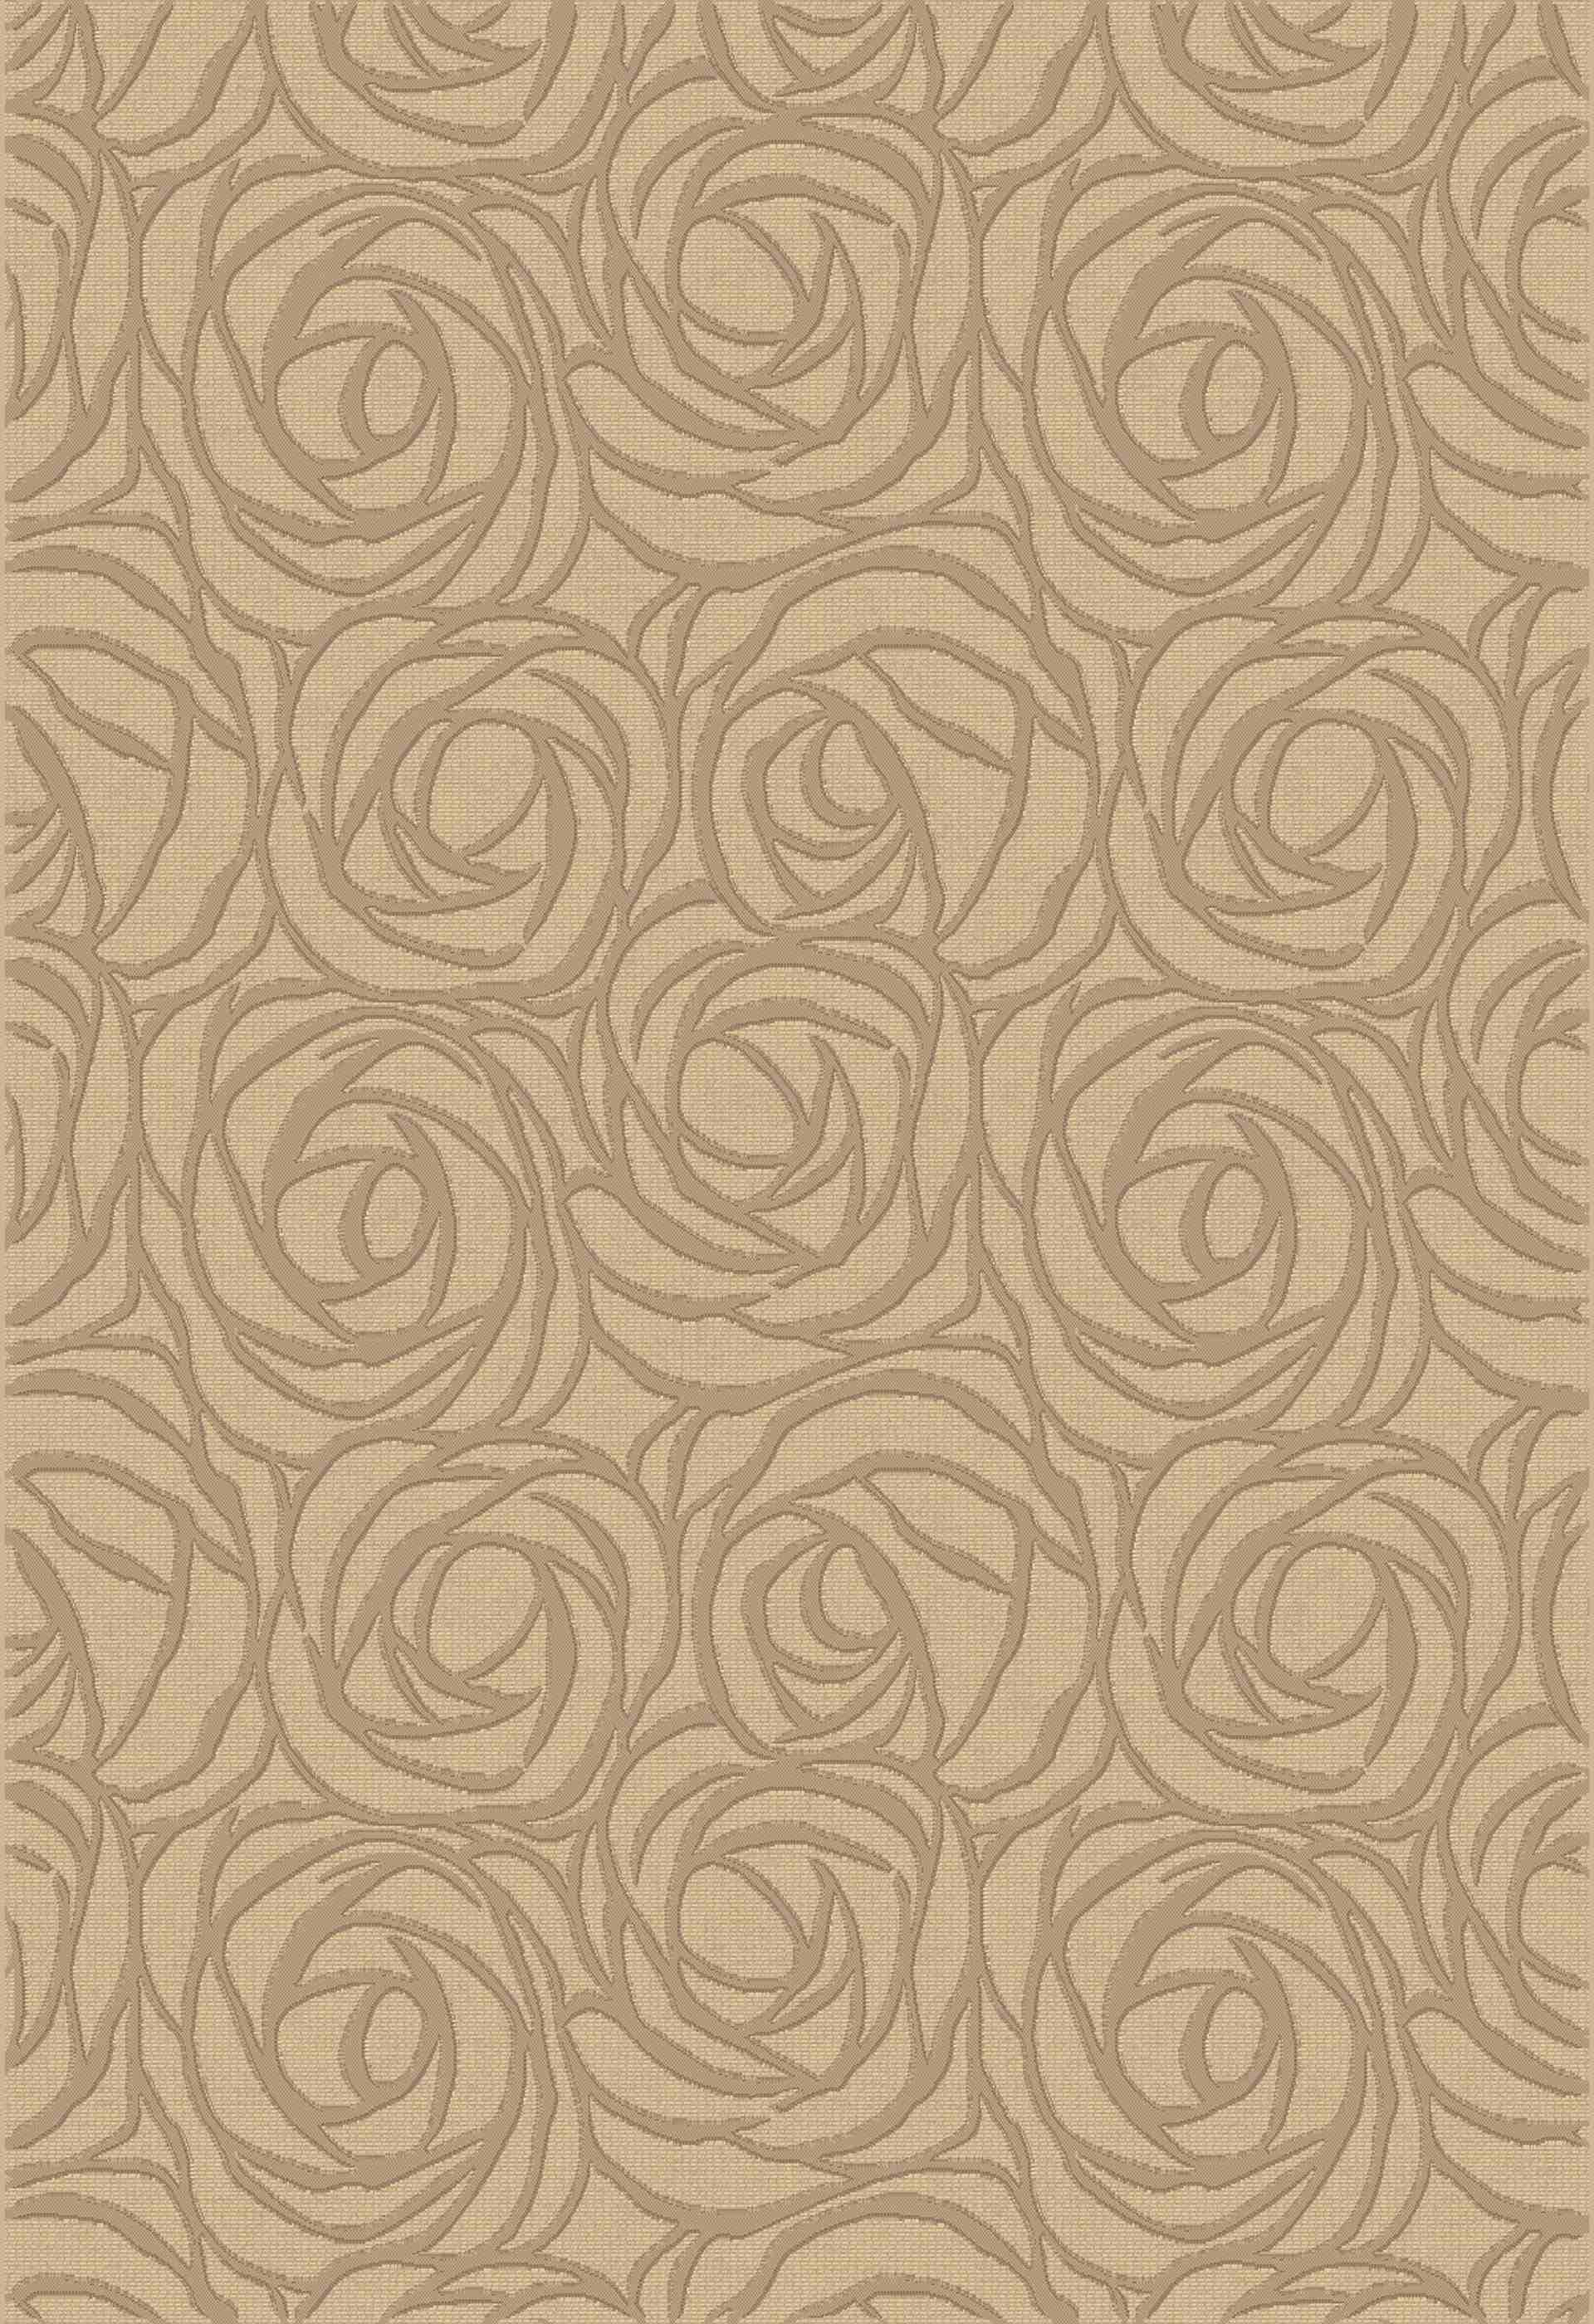 Dynamic Rugs Eclipse Floral Creme 63011 Area Rug